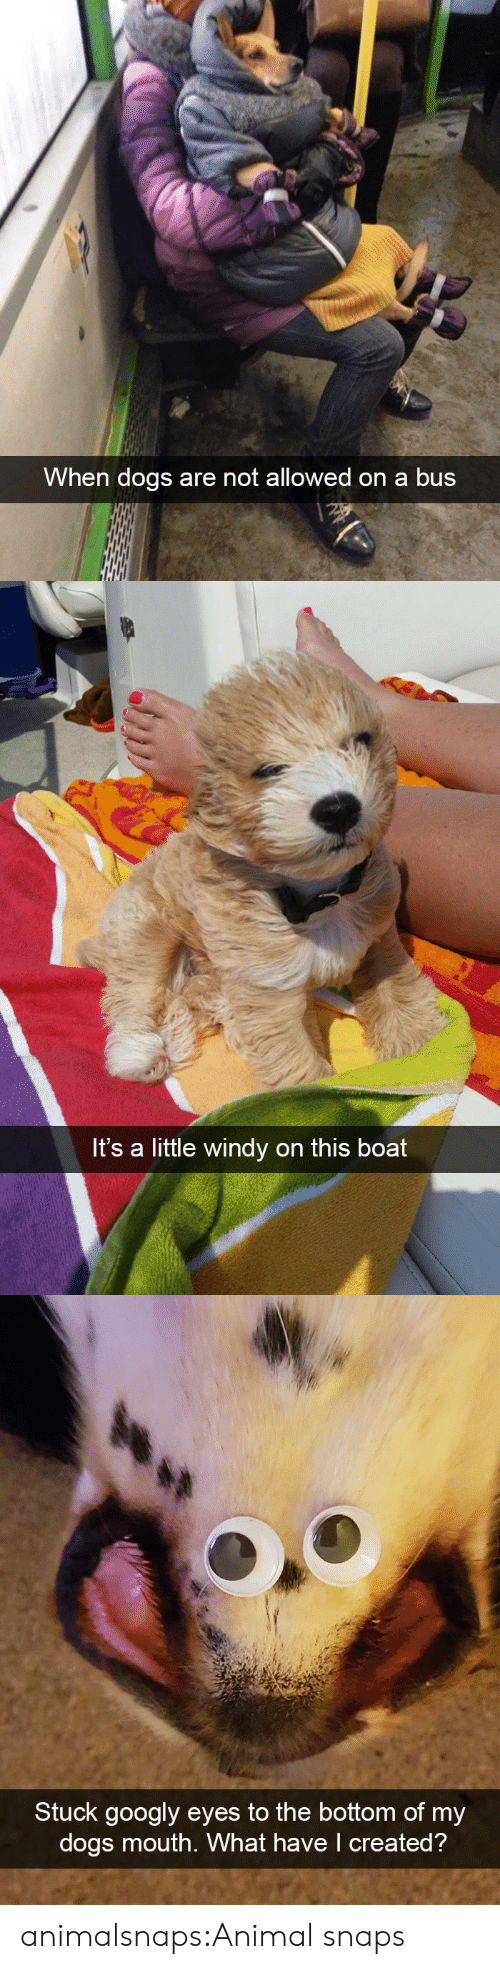 Dogs, Tumblr, and Animal: When dogs are not allowed on a bus   Its a little windy on this boat   Stuck googly eyes to the bottom of my  dogs mouth. What have I created? animalsnaps:Animal snaps